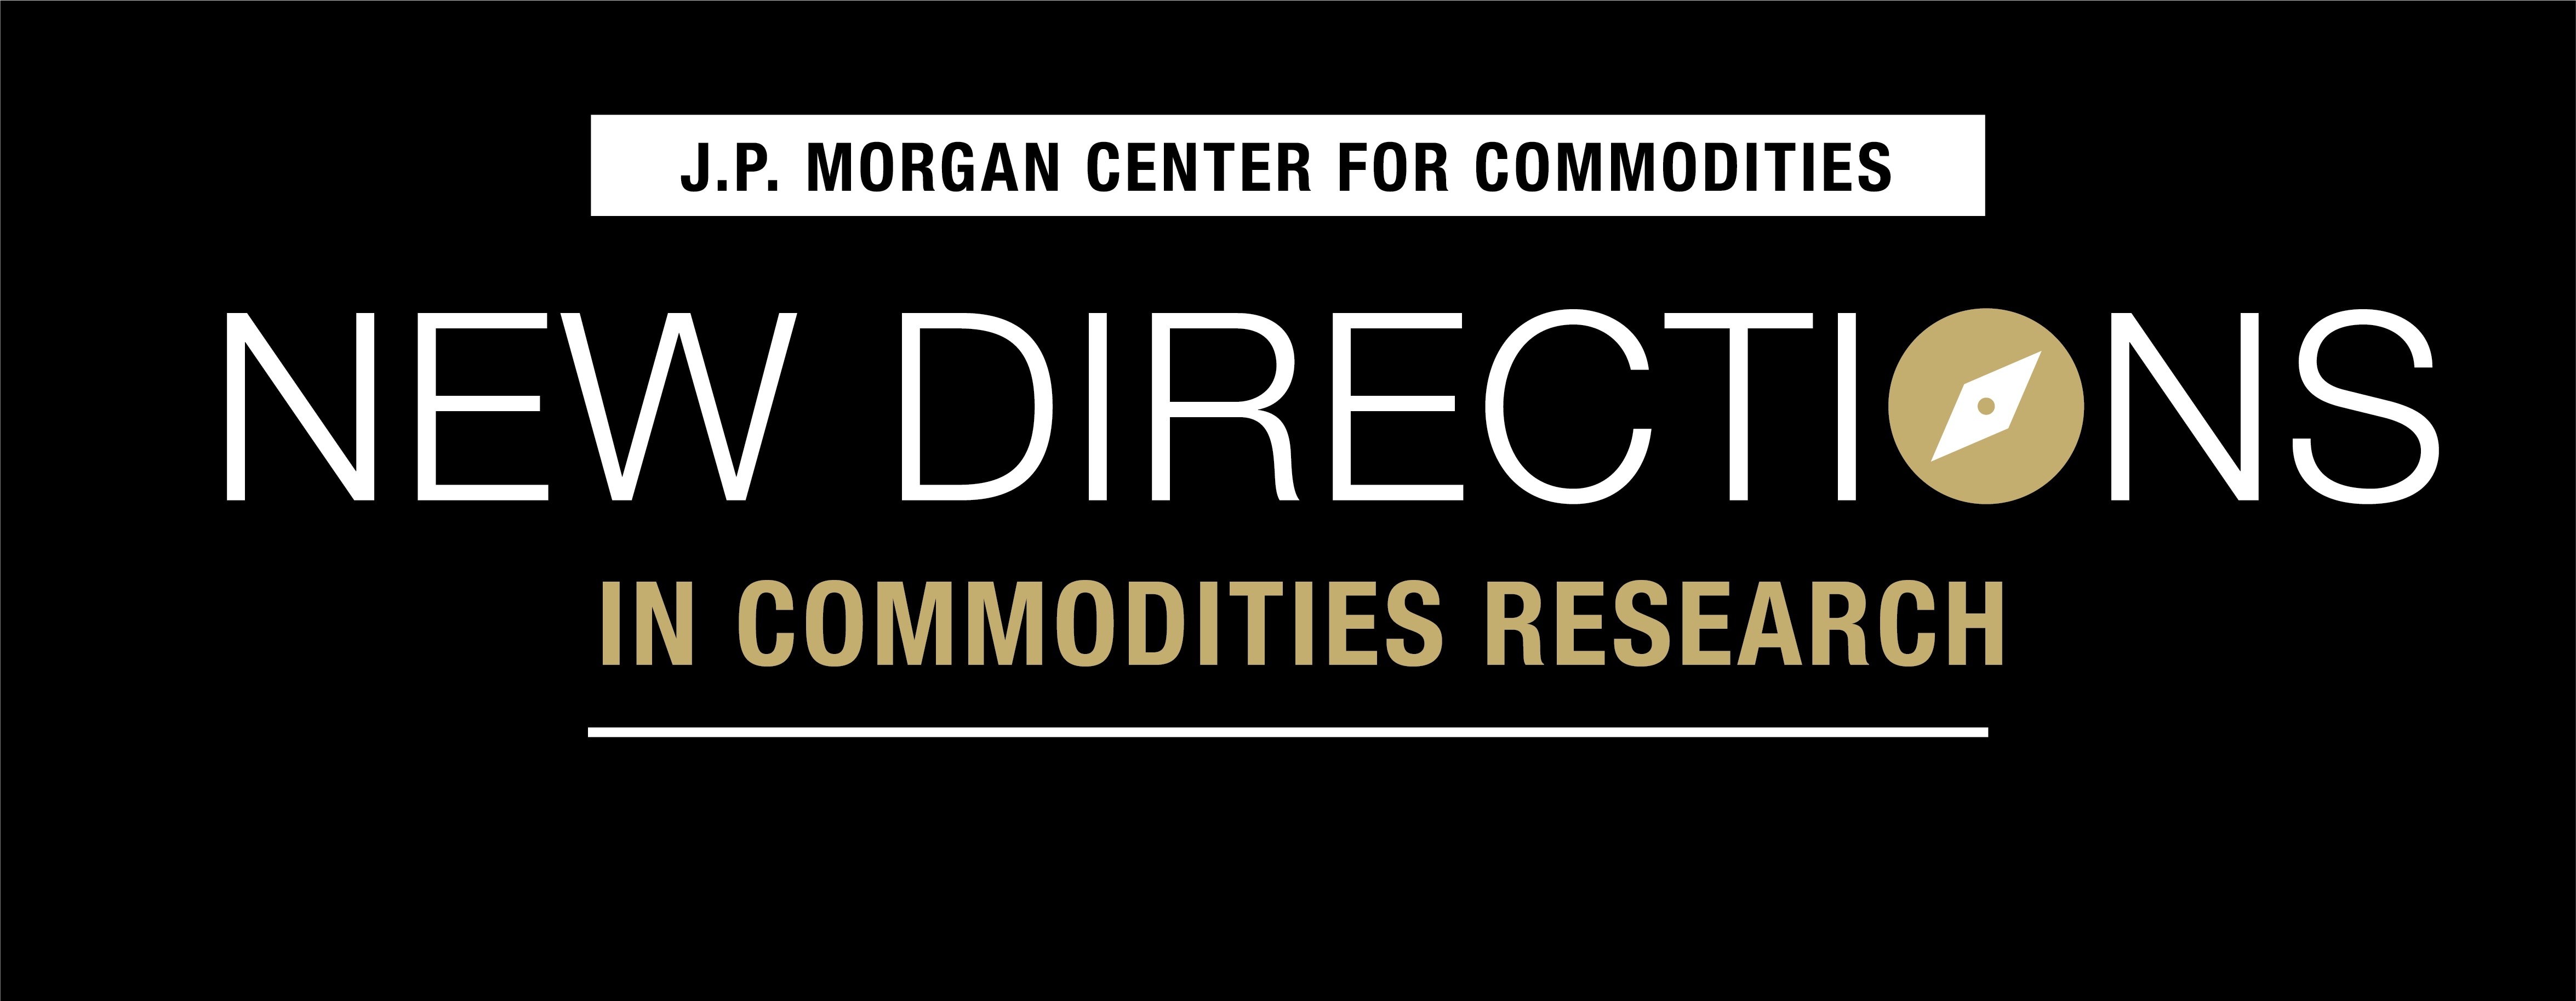 2019 New Directions in Commodities Research